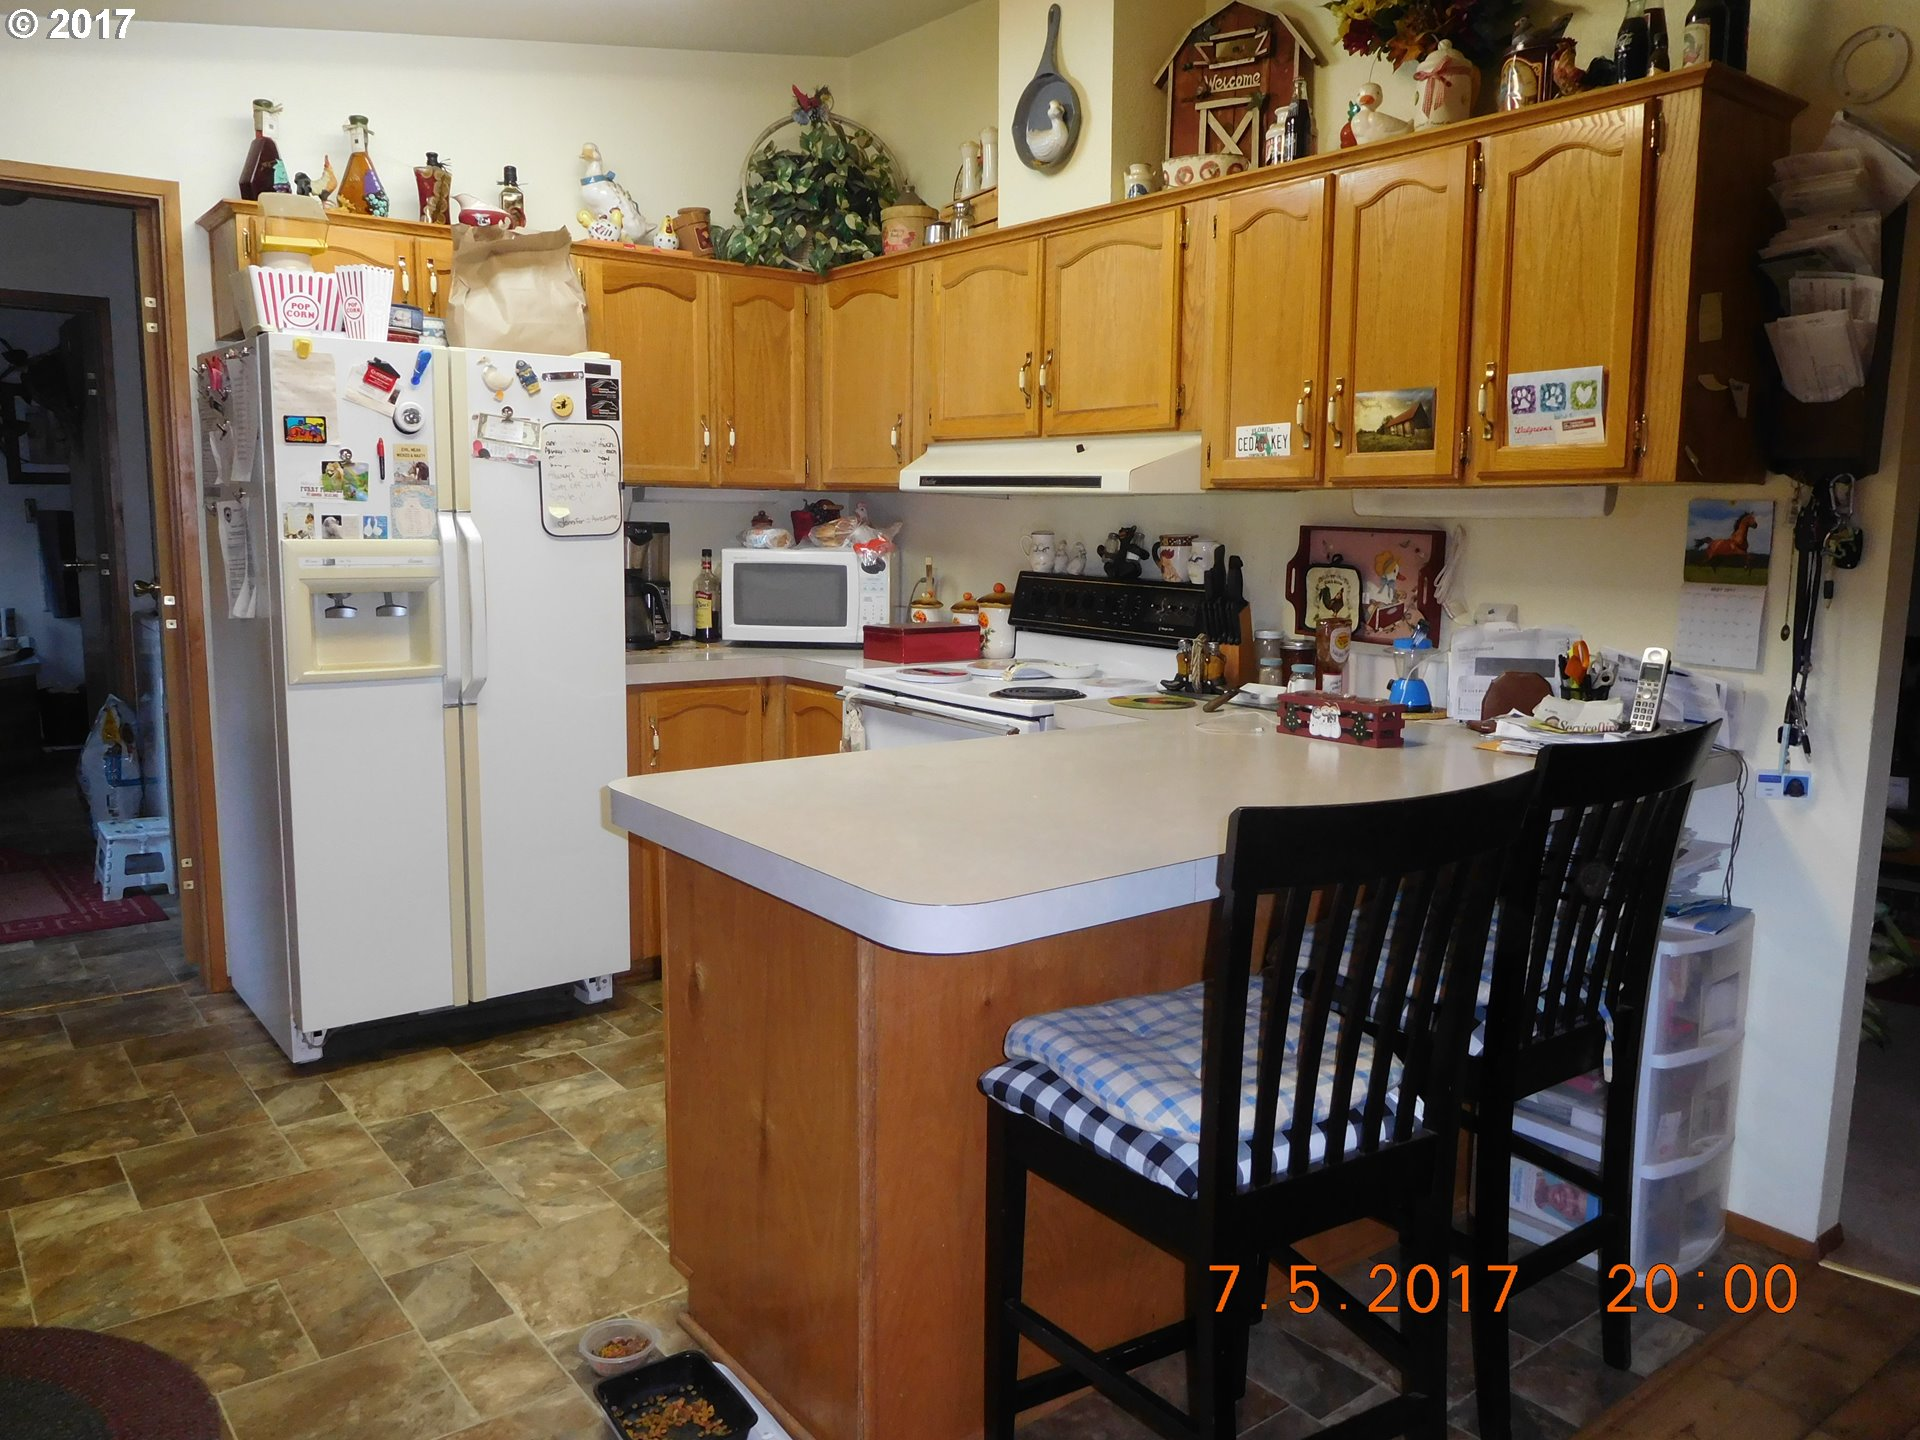 13577 S UNION HALL RD Canby, OR 97013 - MLS #: 17351471